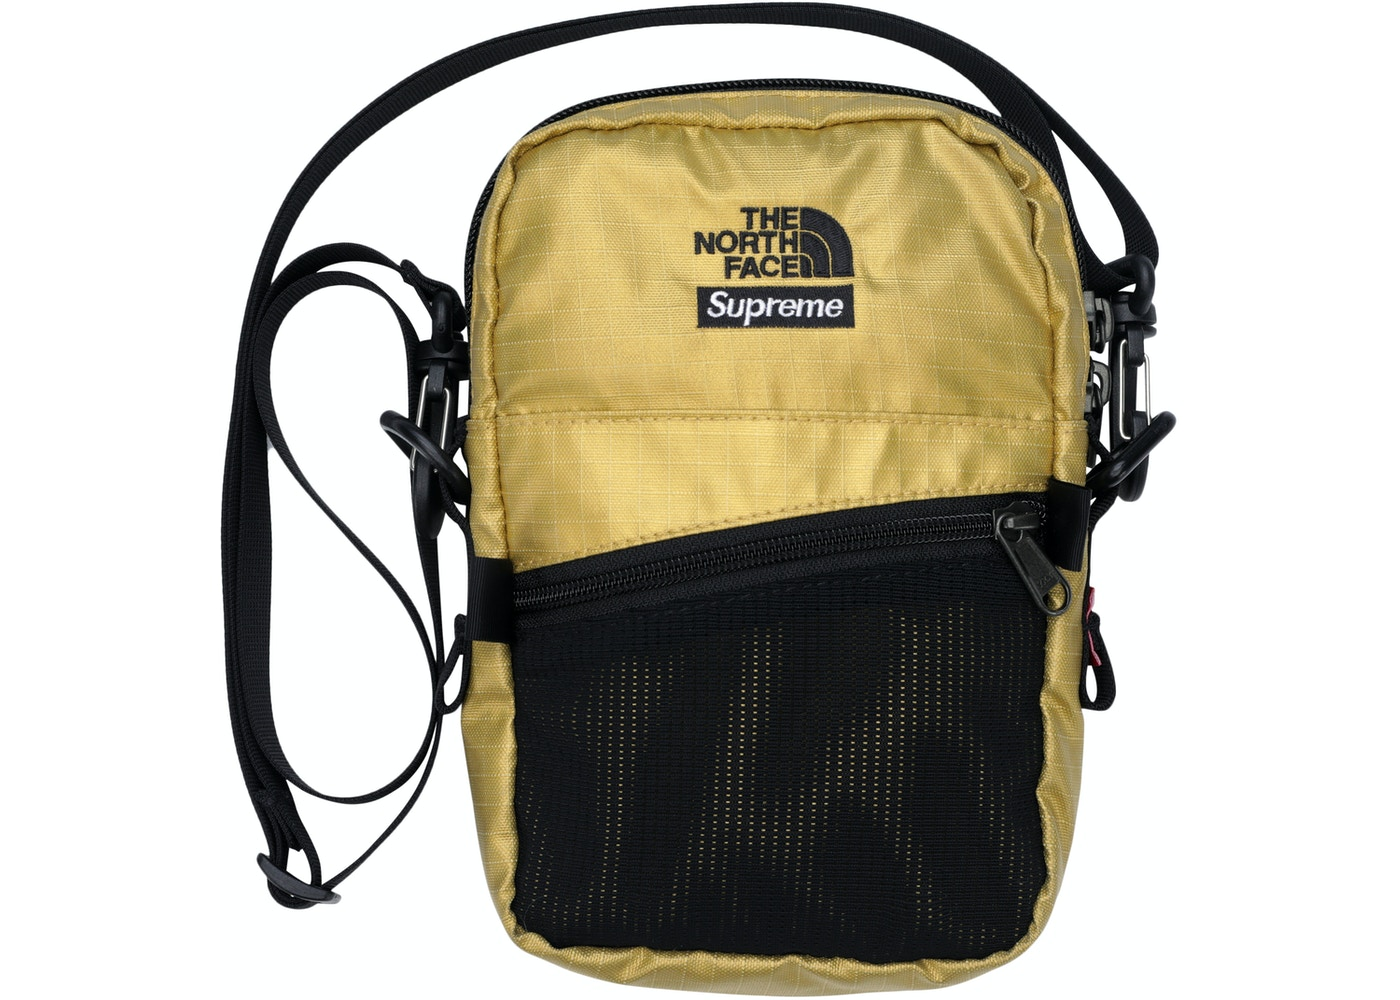 9cfb44659 Supreme The North Face Metallic Shoulder Bag Gold